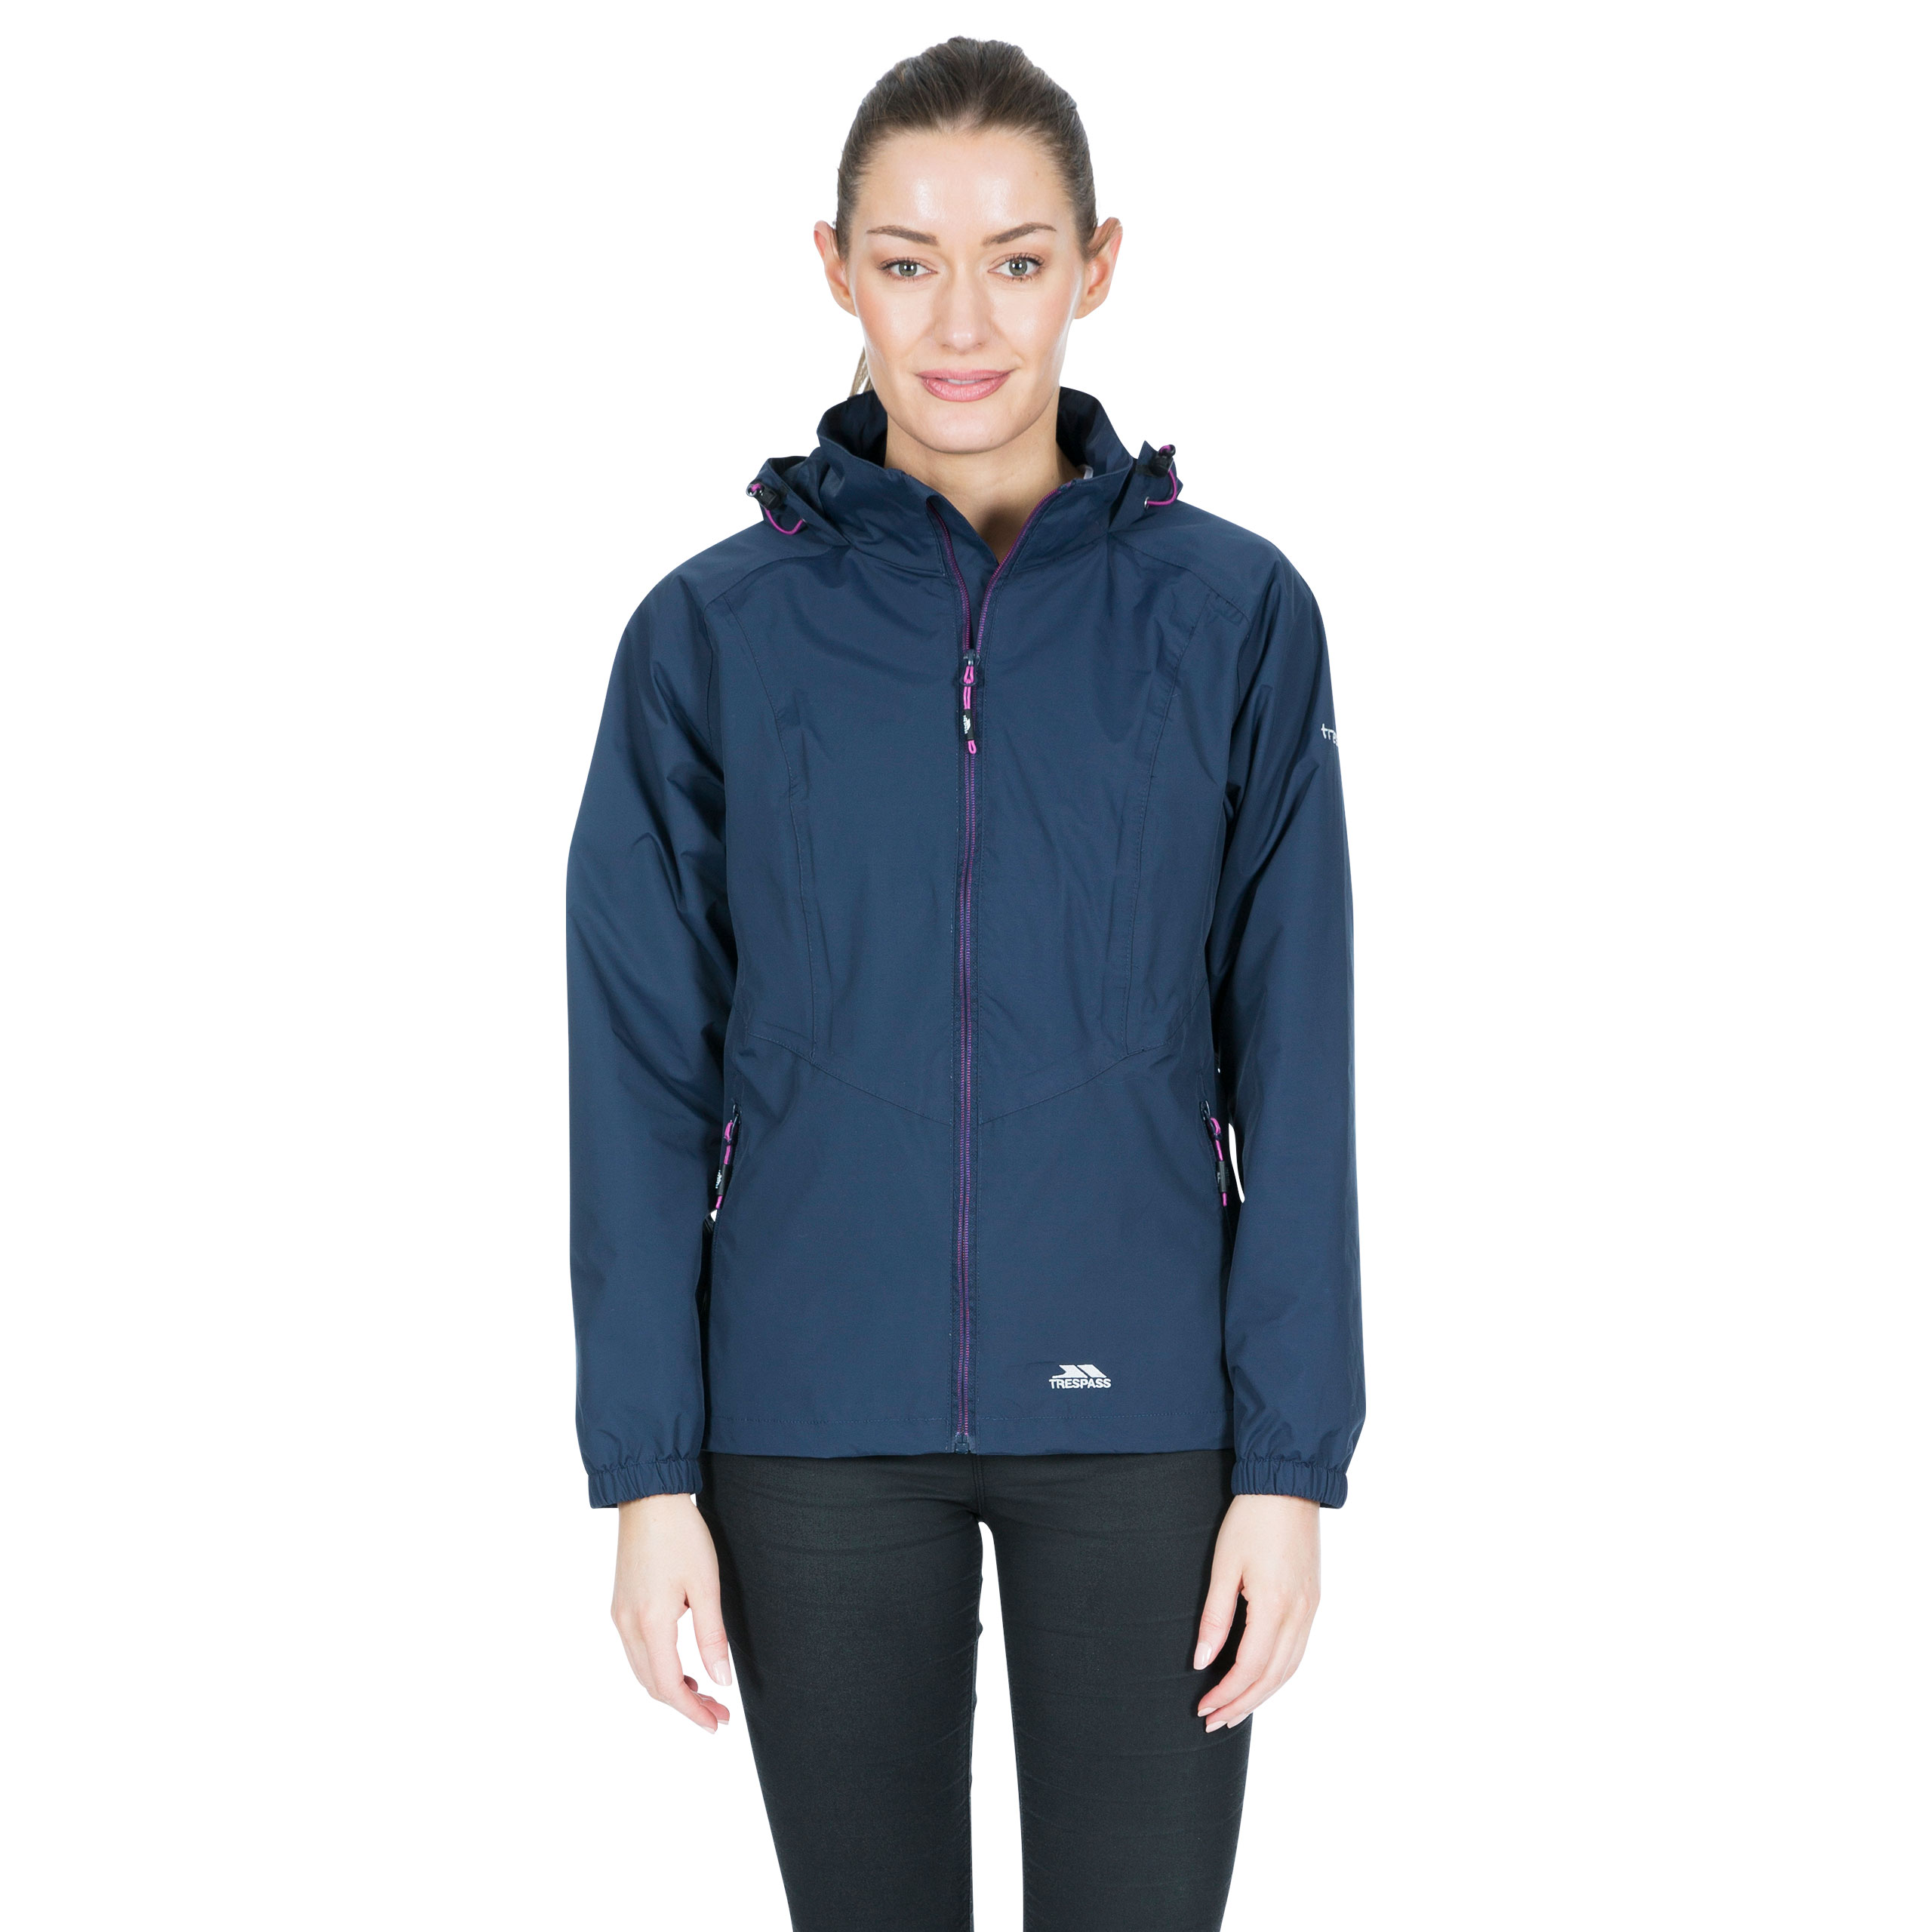 Trespass-Blyton-Womens-Waterproof-Jacket-With-Hood-in-Black-Navy-Pink-Blue thumbnail 16